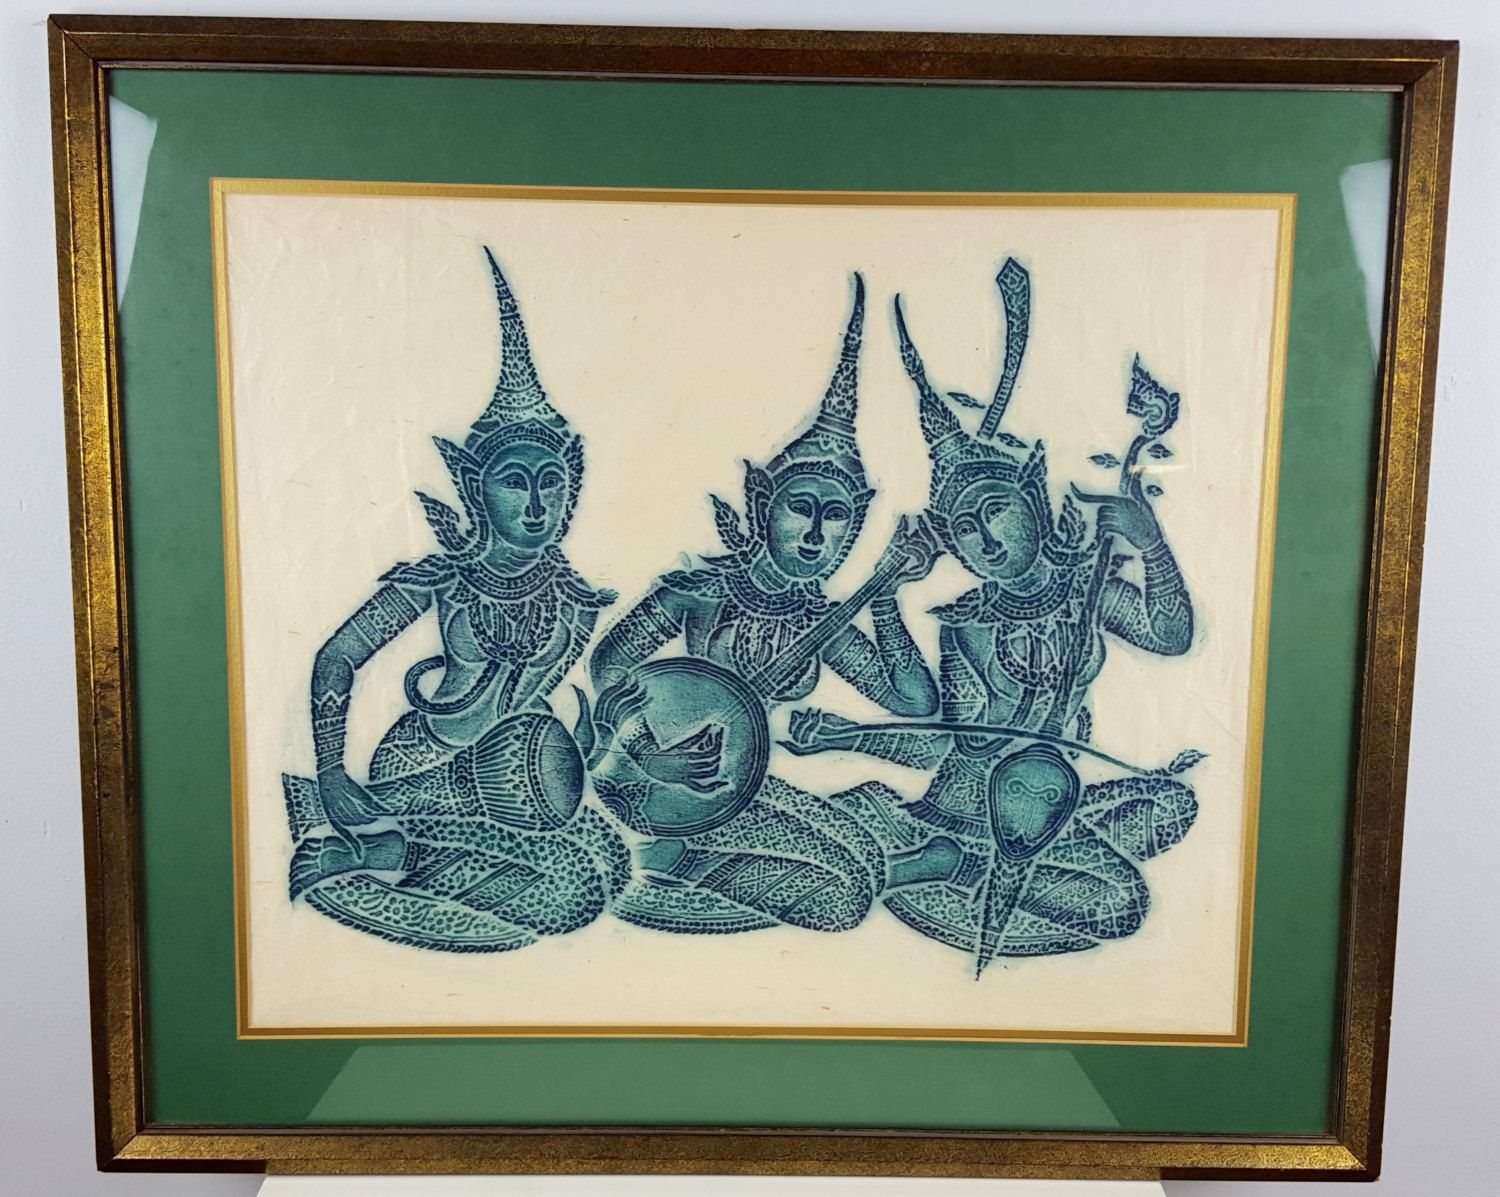 Vintage Framed Thai Temple Rubbing on Rice Paper, Buddhist Art ...